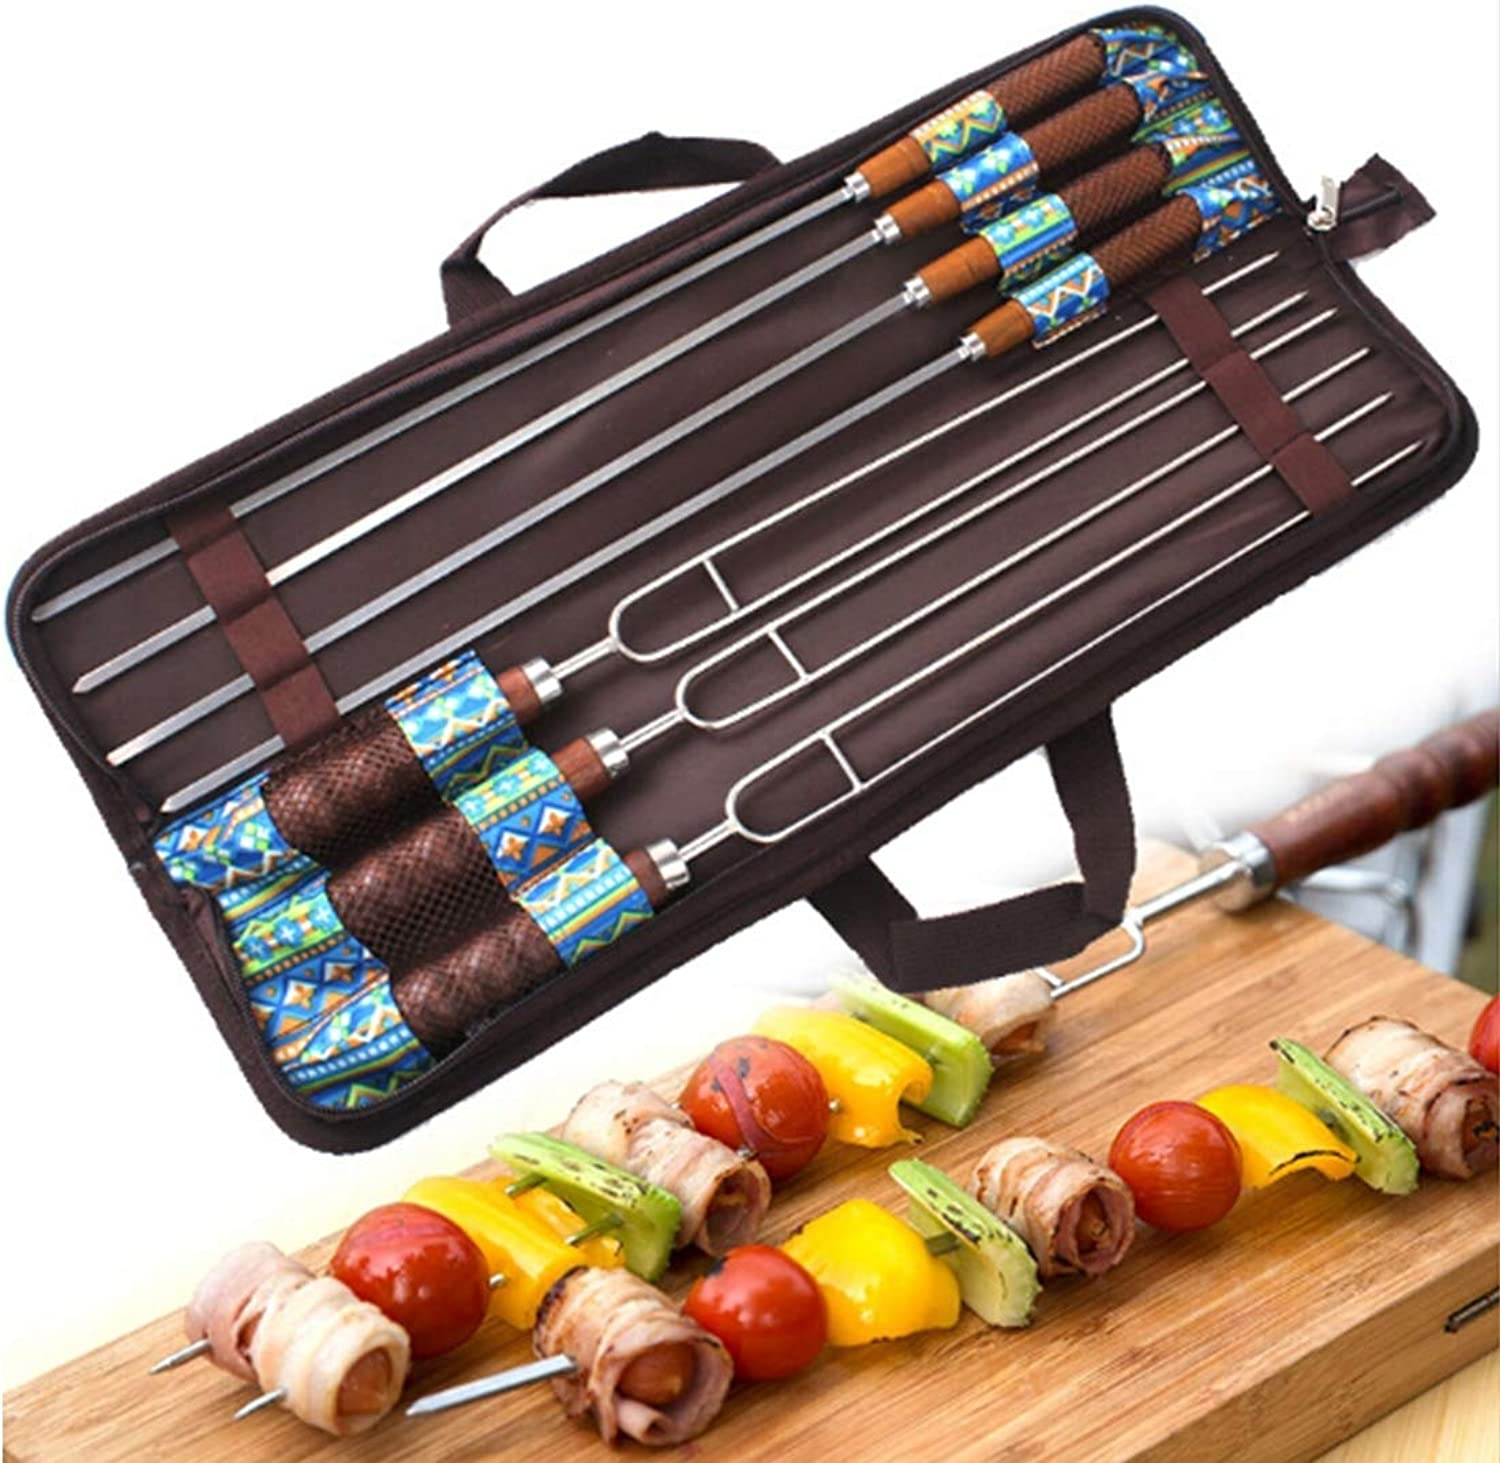 VAXT Direct Outdoor Picnic Stainless Steel BBQ Bake Needle Barbecue Fork UShaped Environmental Wooden Handle 7 Piece Set